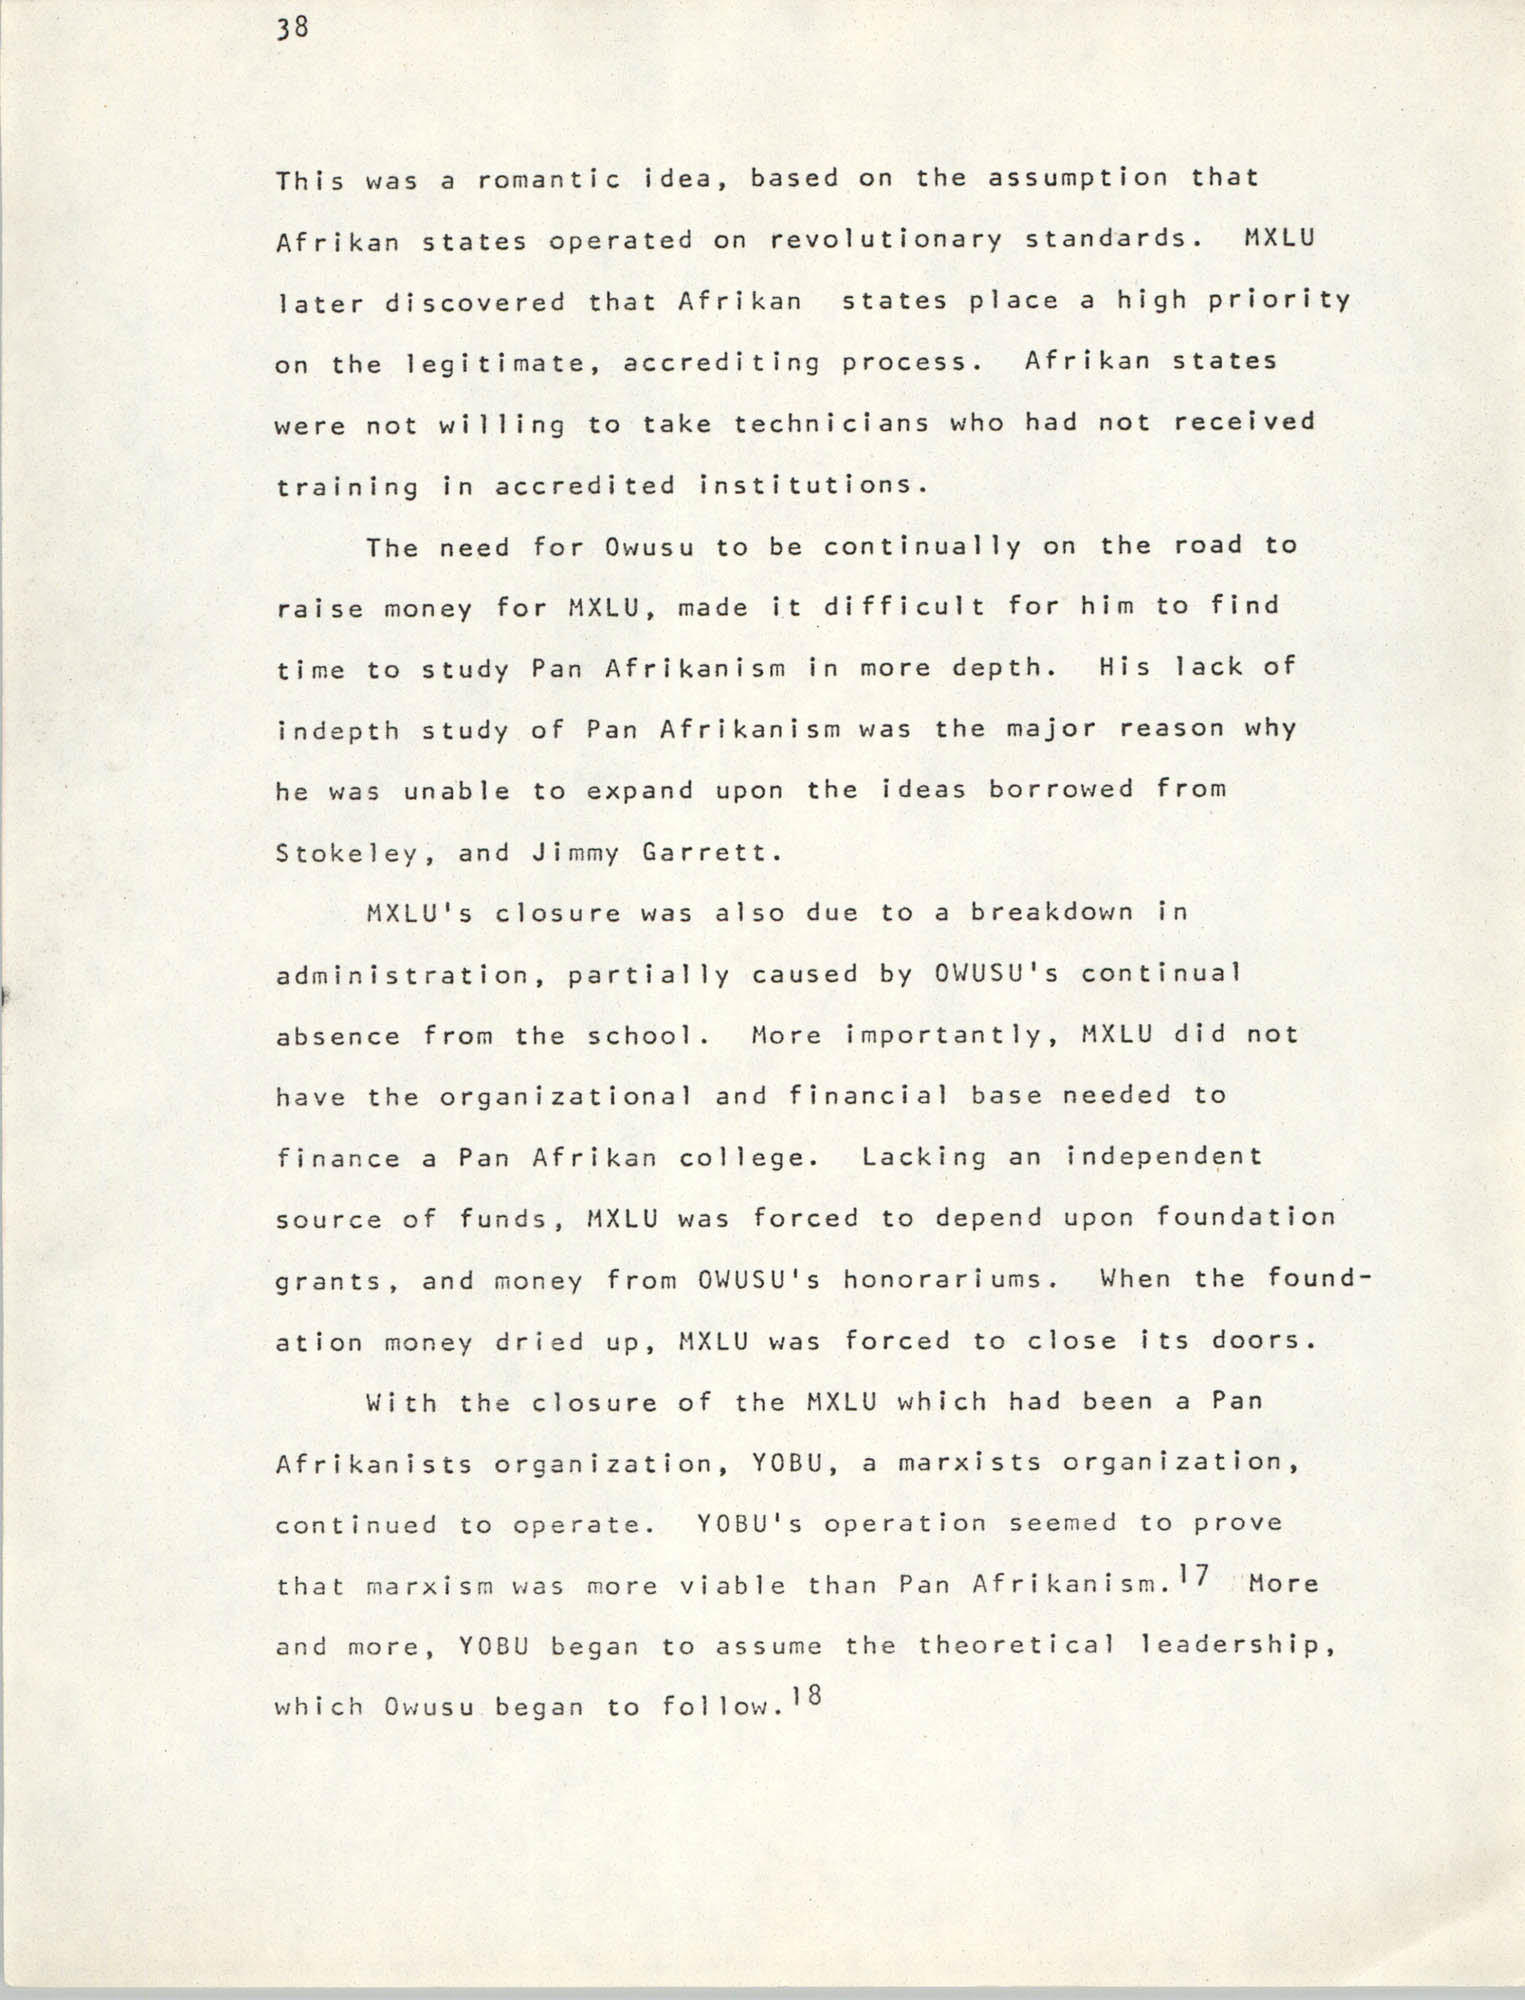 Pan-African Committee of the Black United Front, Page 38